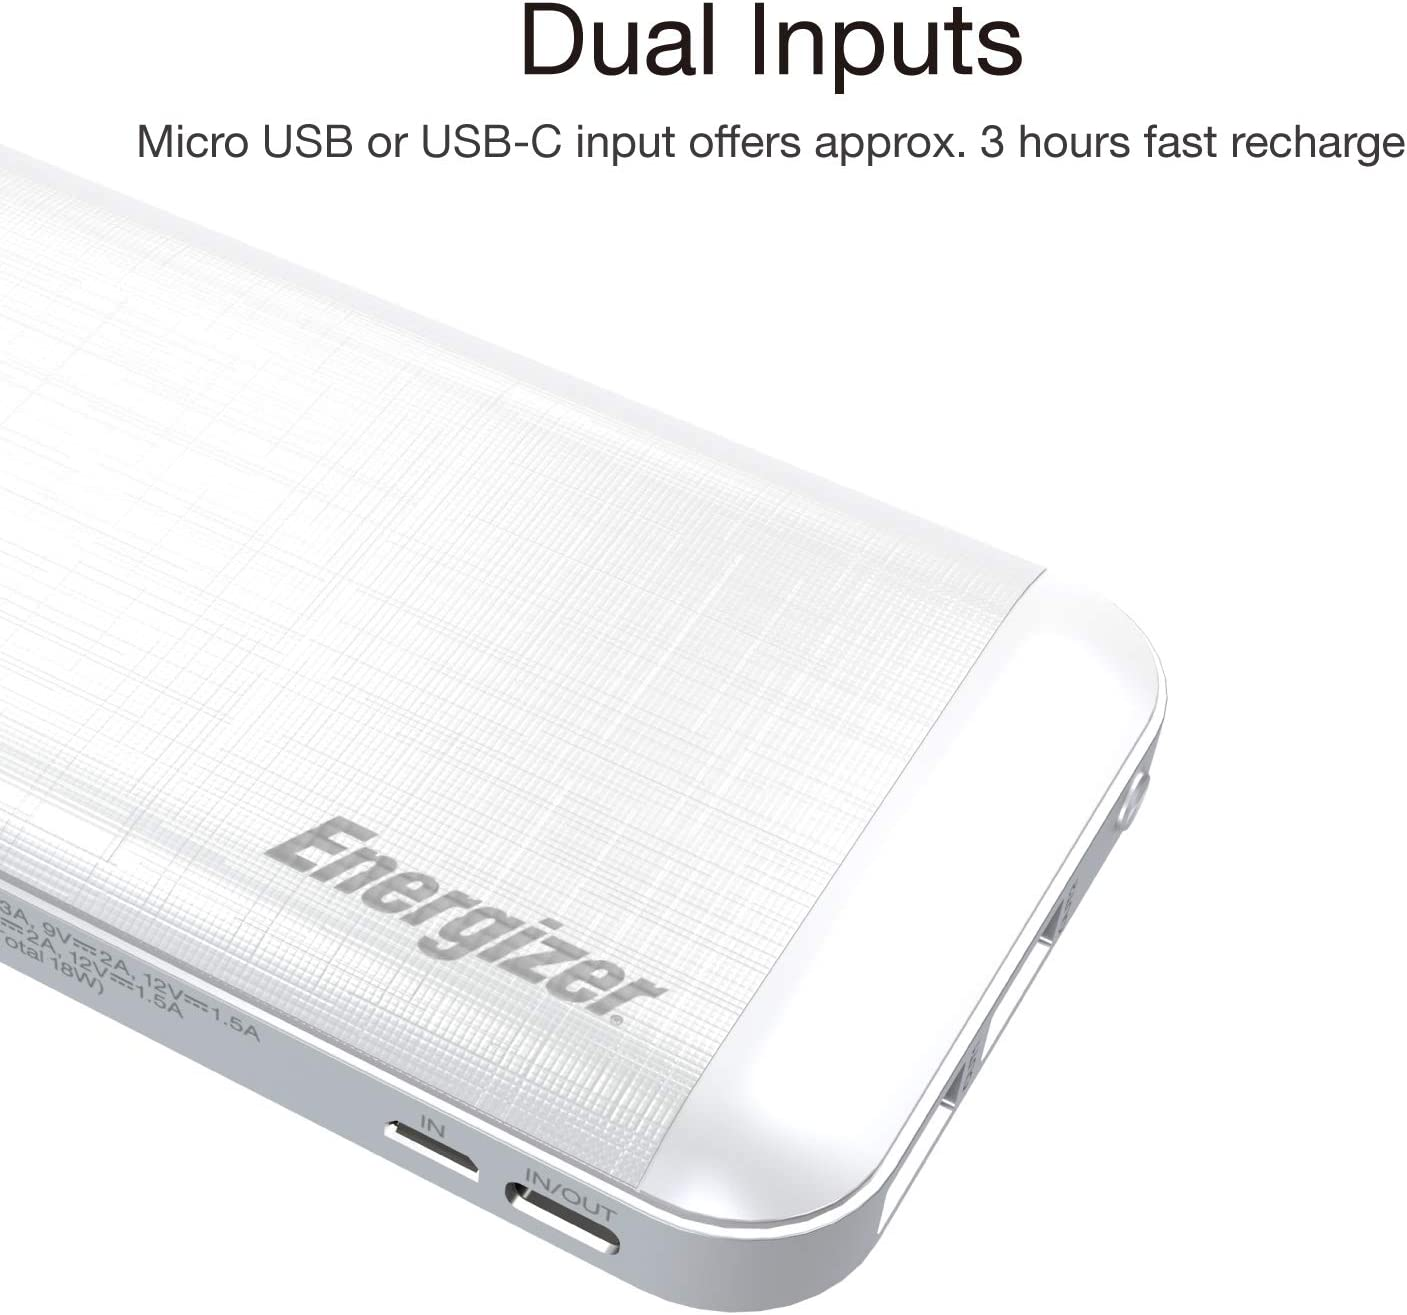 Energizer Ultimate 10000 Series, Ultra Reliable, Fast Charging, High Capacity 10000mAh Lithium Polymer, 18W Power Bank wPower Delivery 3.0 & QC 3.0